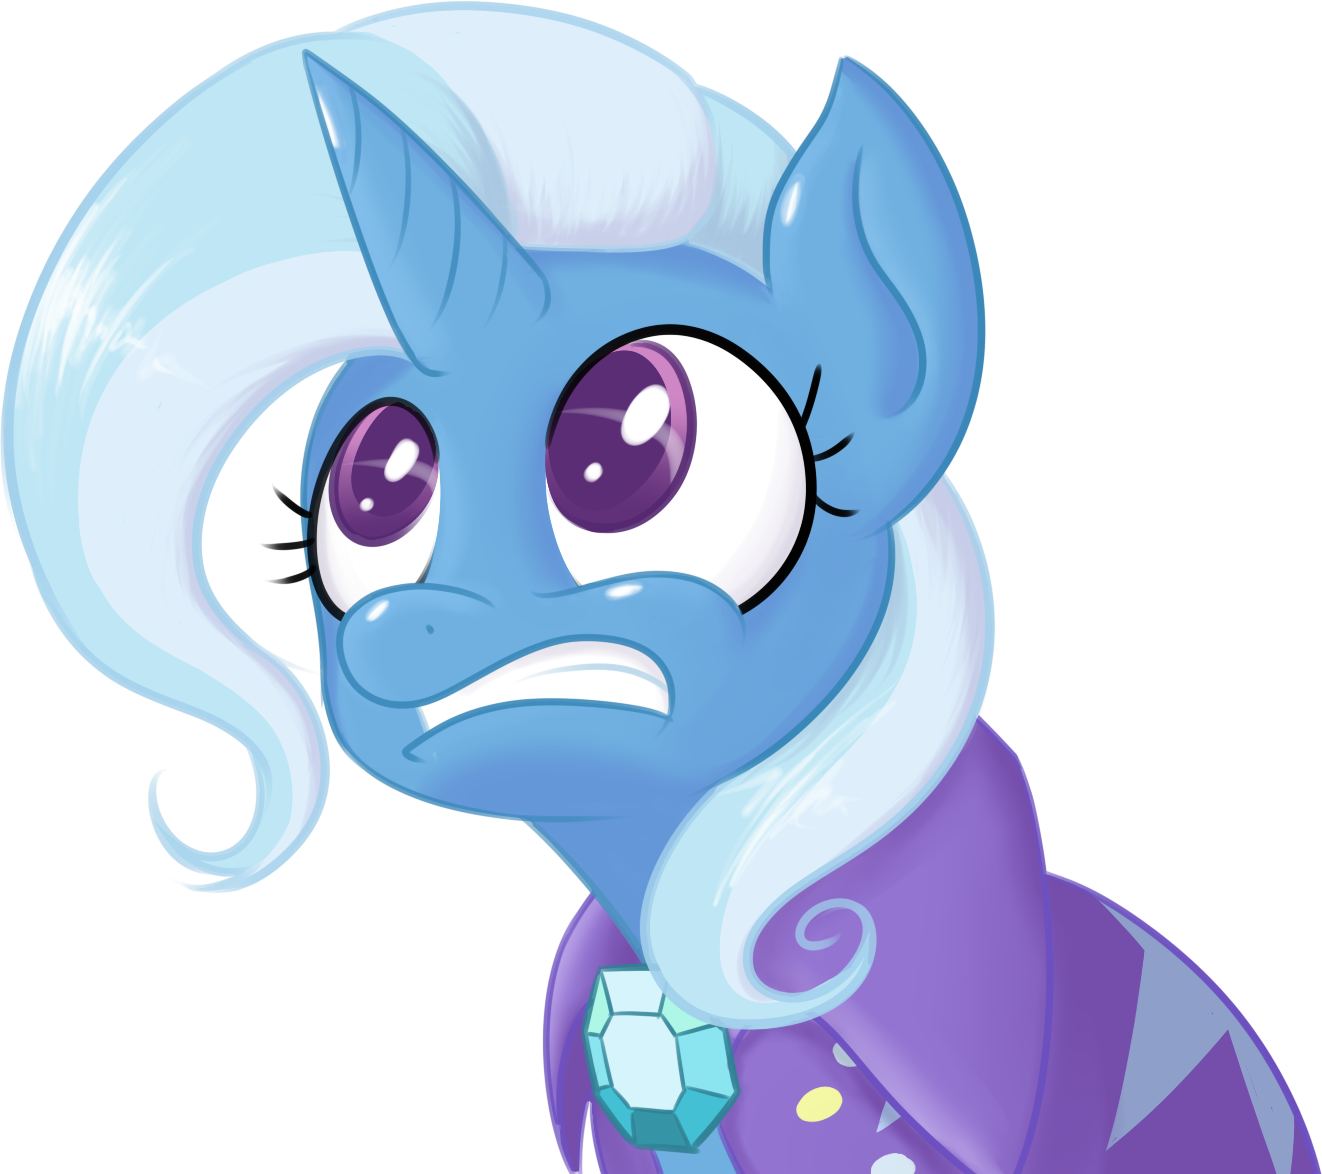 Trixie face by MikeTheUser